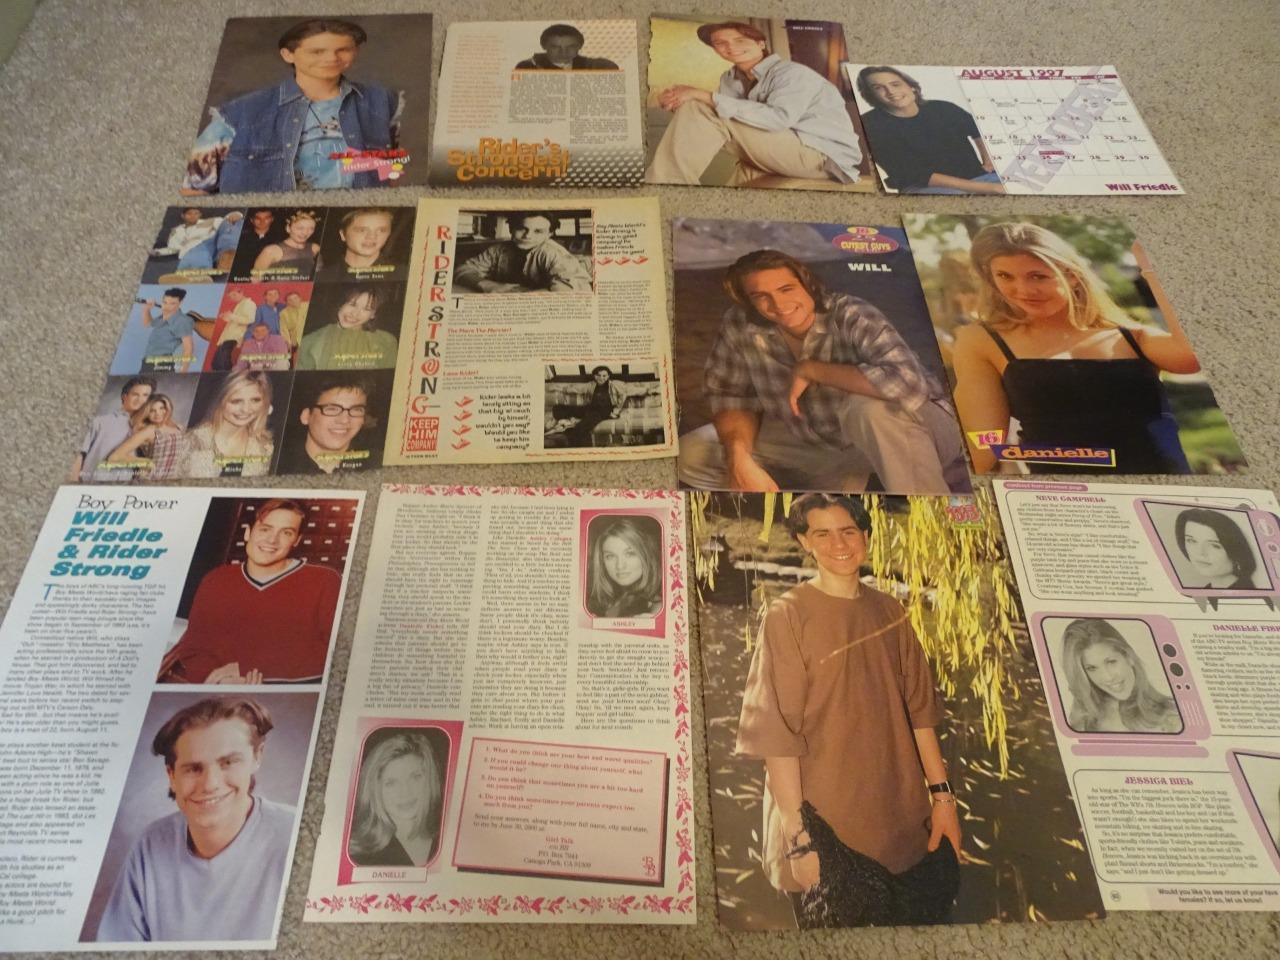 Danielle Fishel Rider Strong Ben Savage teen magazine pinups clippings Bop